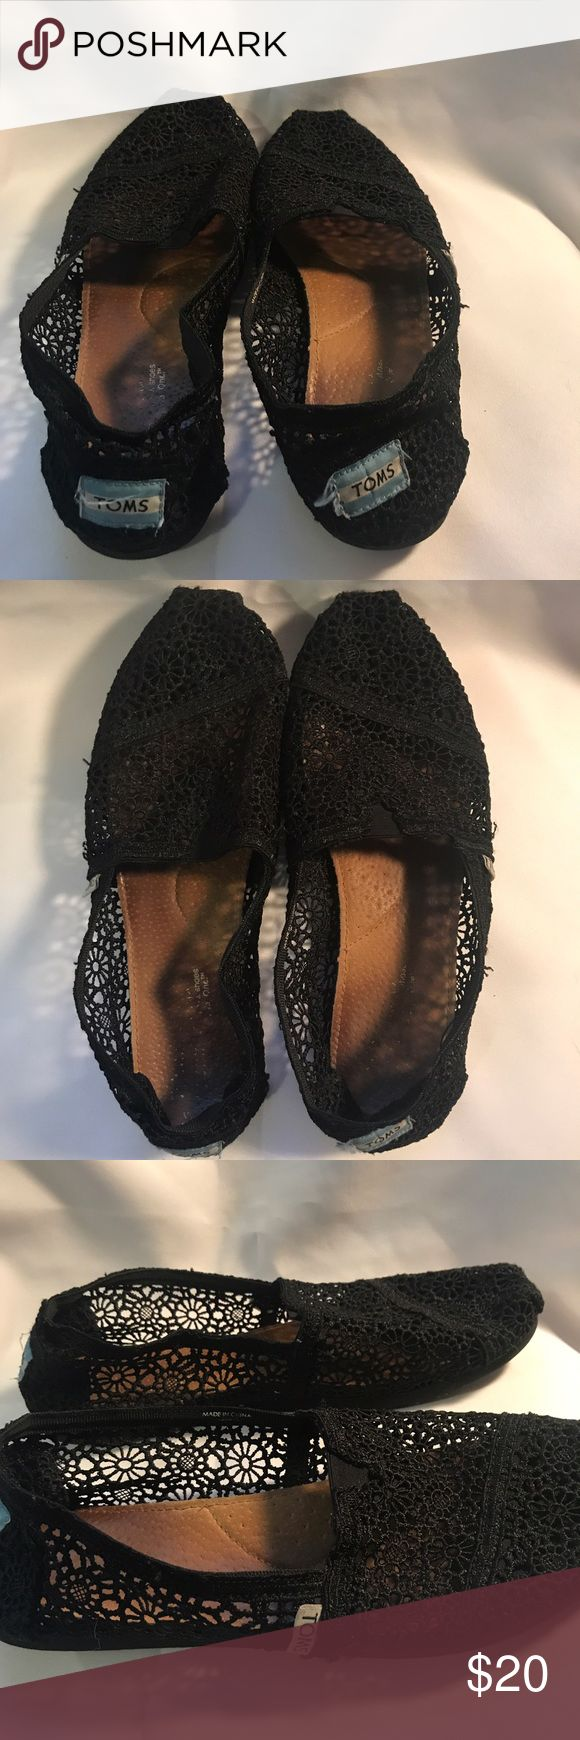 Womens black lace TOMS size 10 Womens black lace TOMS classic shoes with leather sole. Wording on the sole has rubbed off, but I believe these are size 10; they are approximately 27 centimeters in length. No flaws in the lace, and lots of life left in the soles. Check out my other listings for a bundle discount! Toms Shoes Flats & Loafers